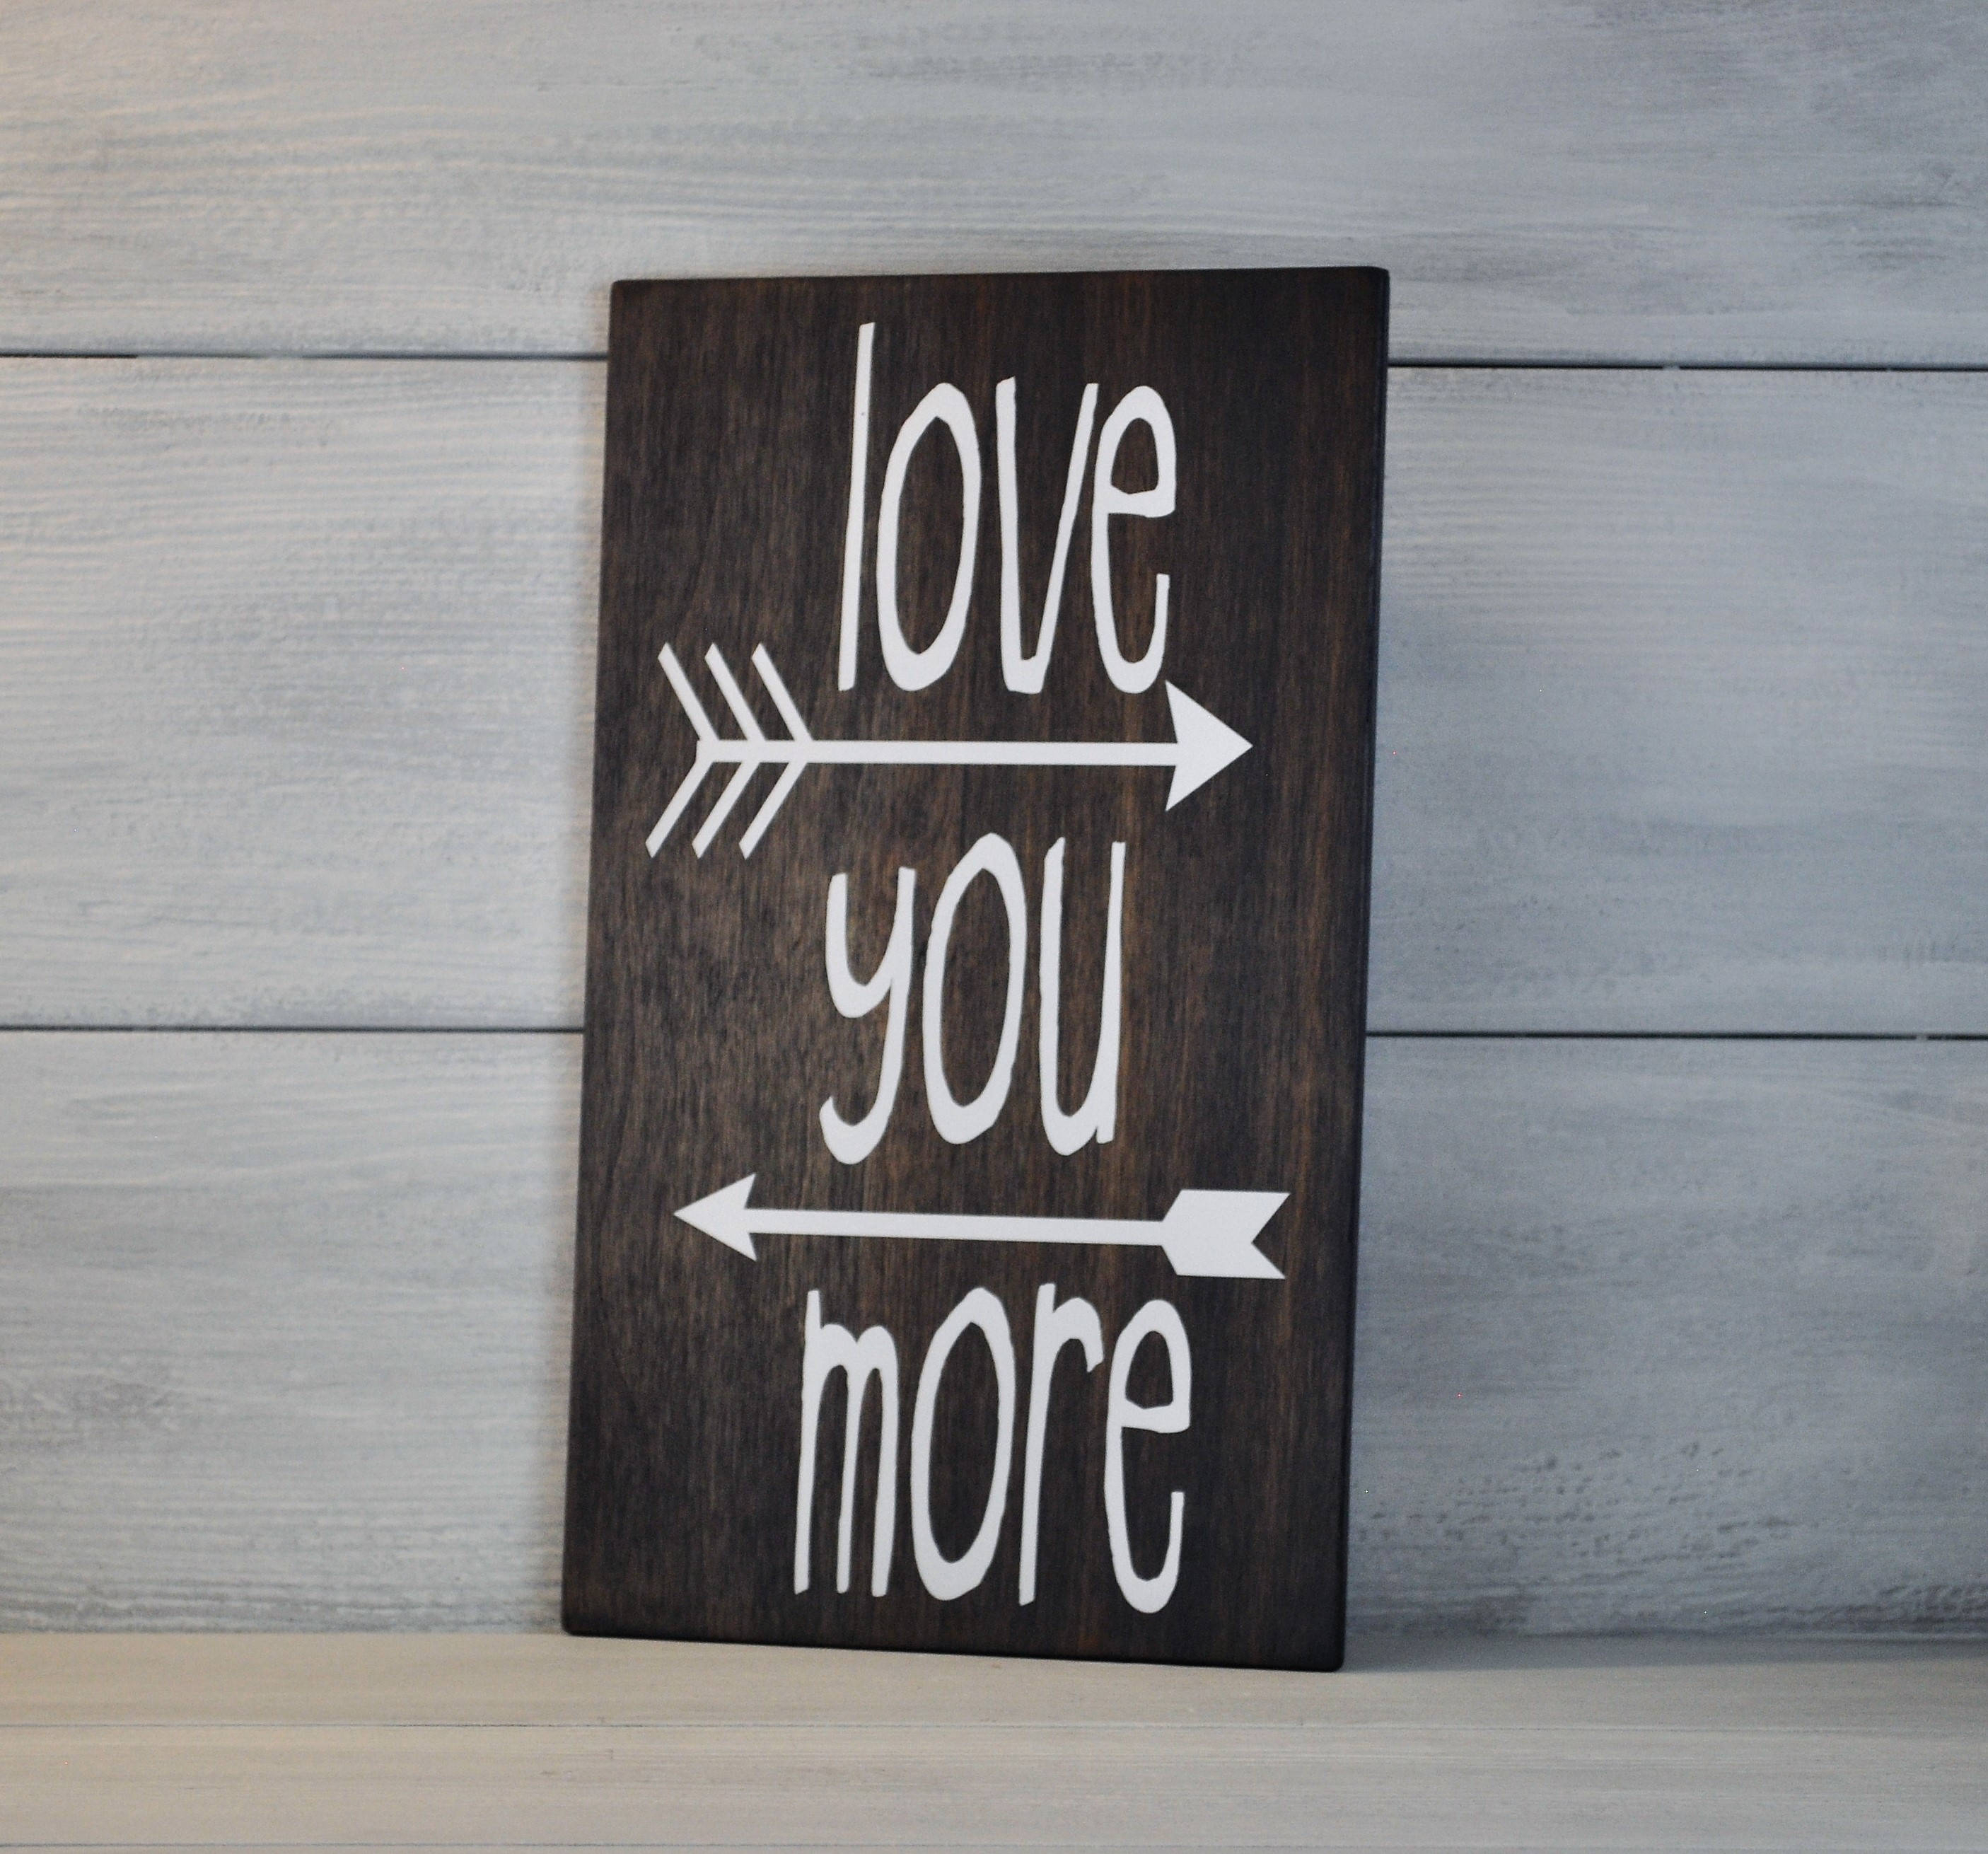 Etsy Throughout 'love You More' Wood Wall Decor (View 9 of 20)